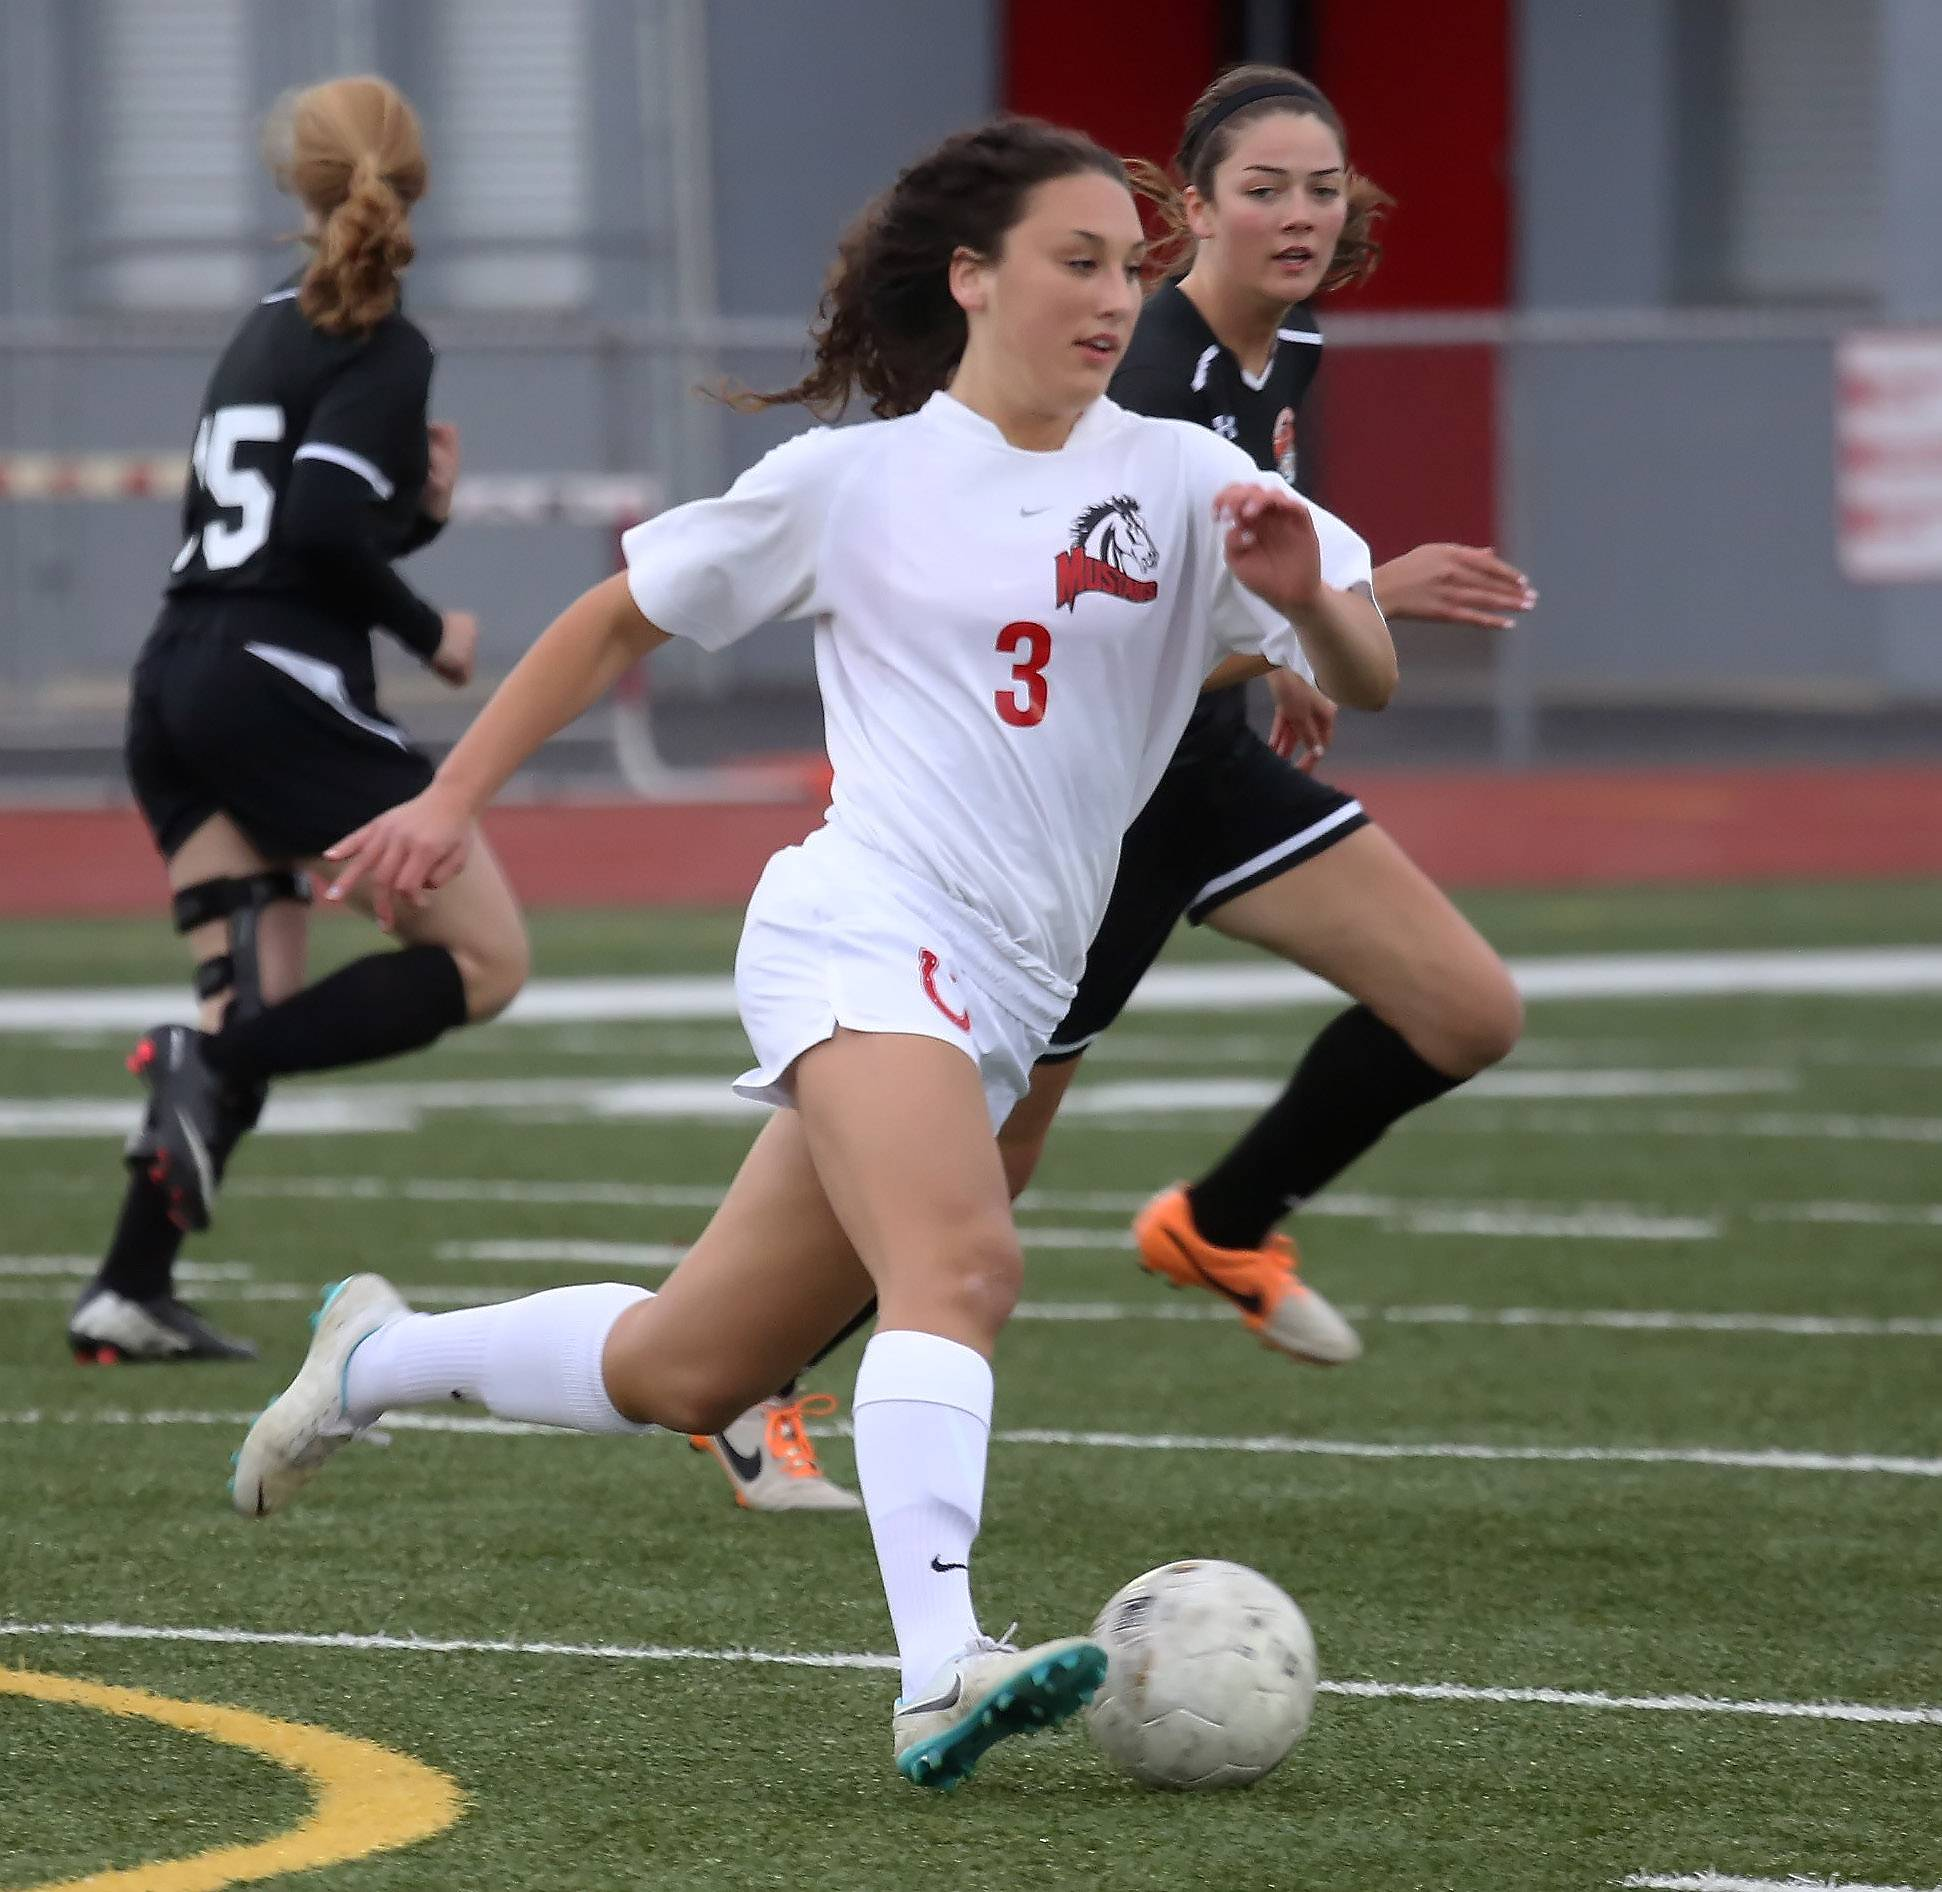 Mundelein midfielder Michele Chernesky races down the field against Libertyville on Tuesday at Mundelein.